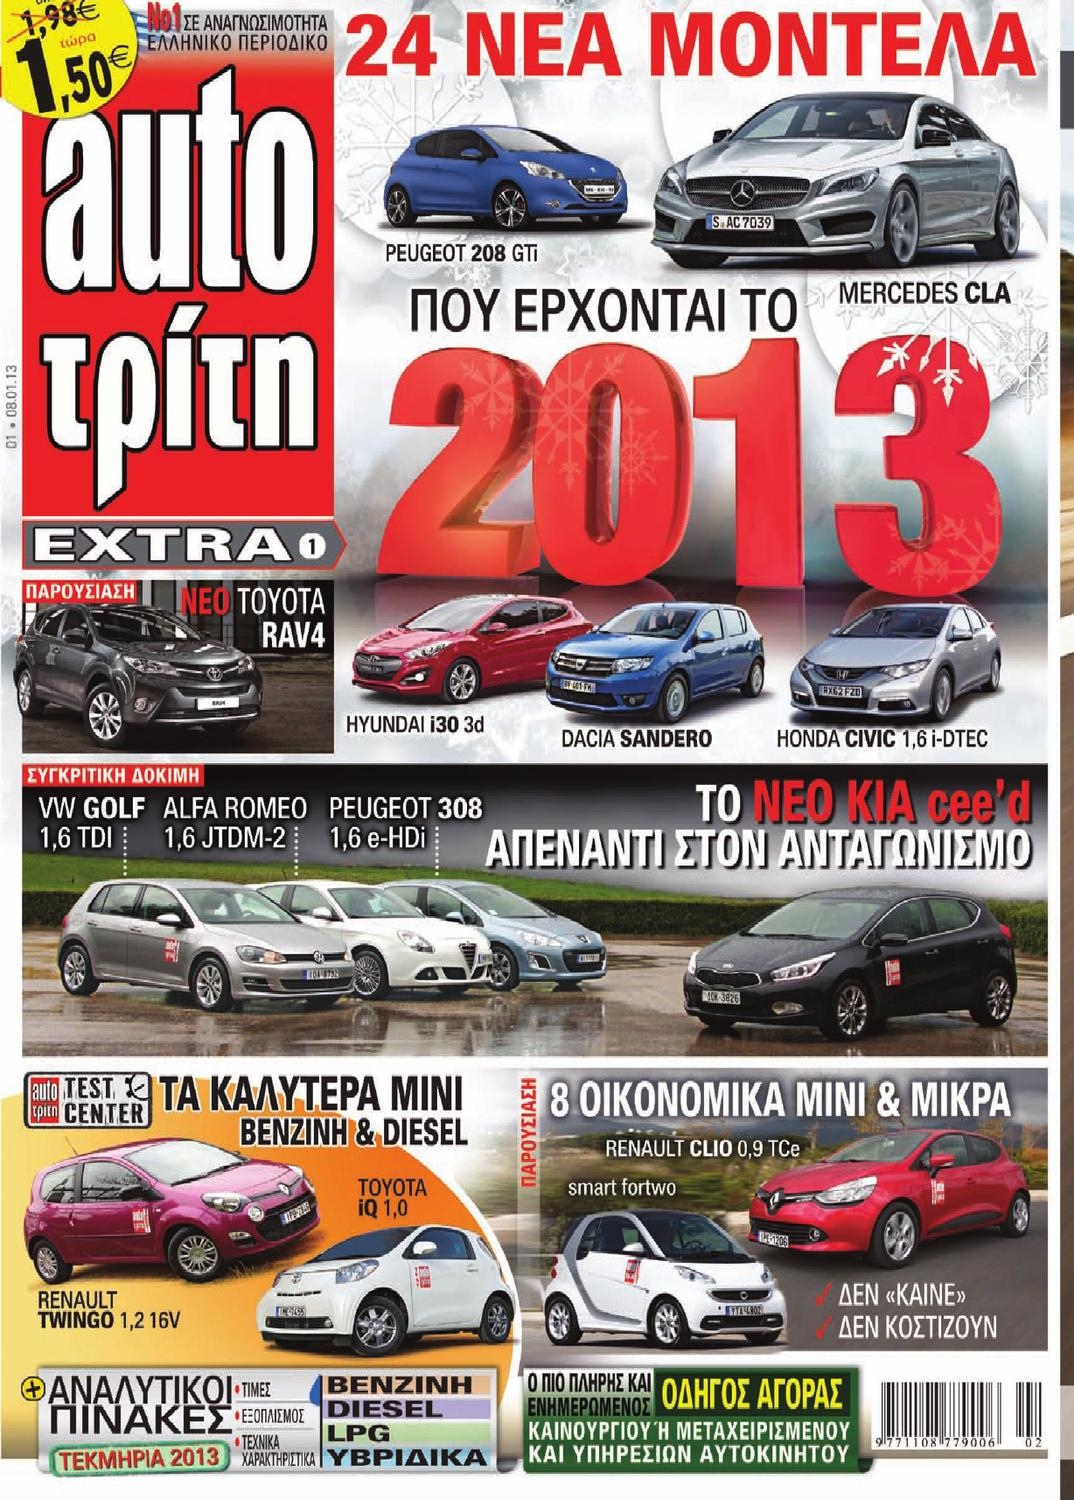 fd25a75ebe Auto Τρίτη 01 2013 by autotriti - issuu